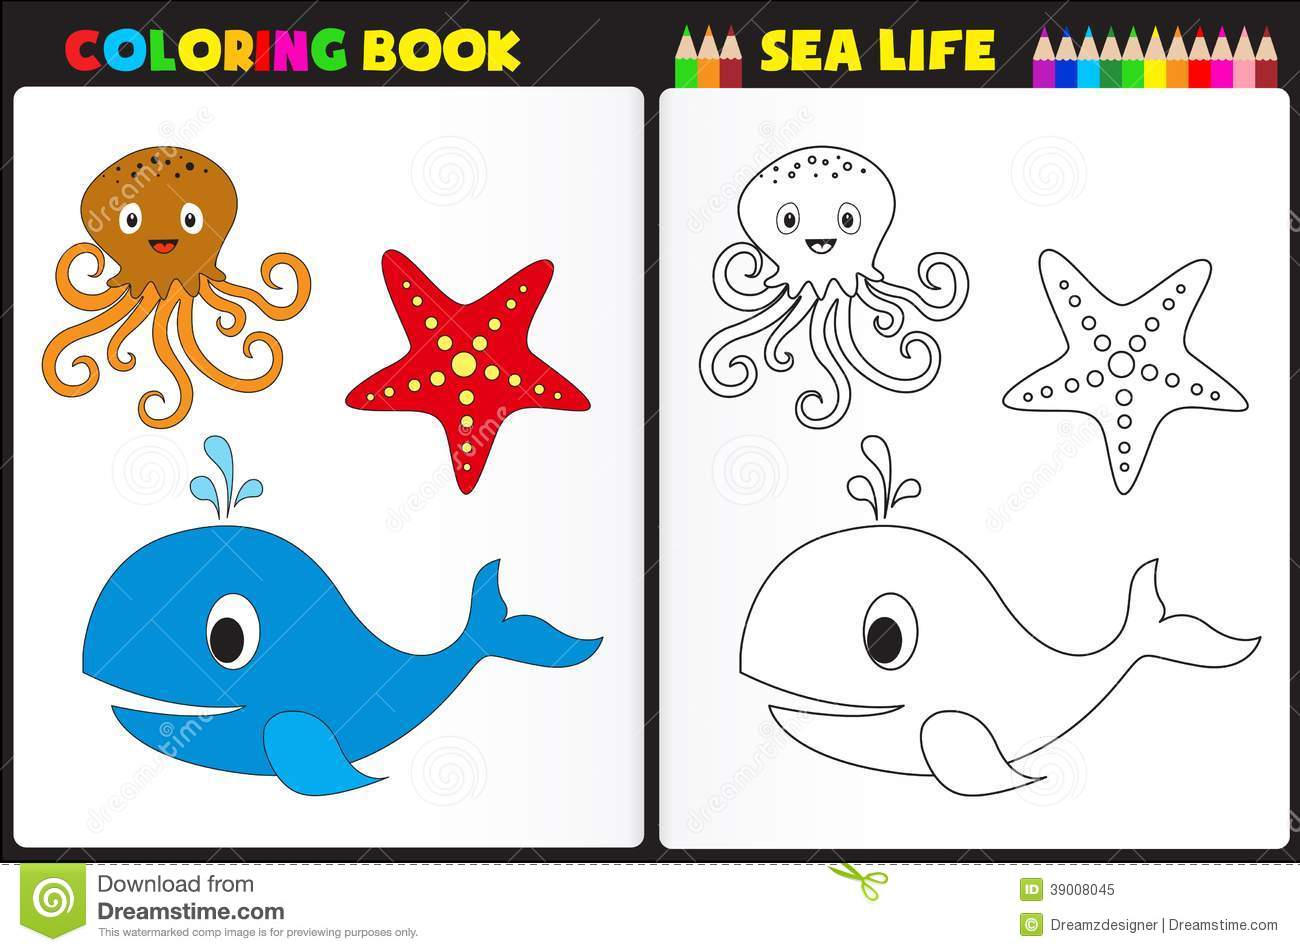 Book of life for coloring - Coloring Book Sea Life